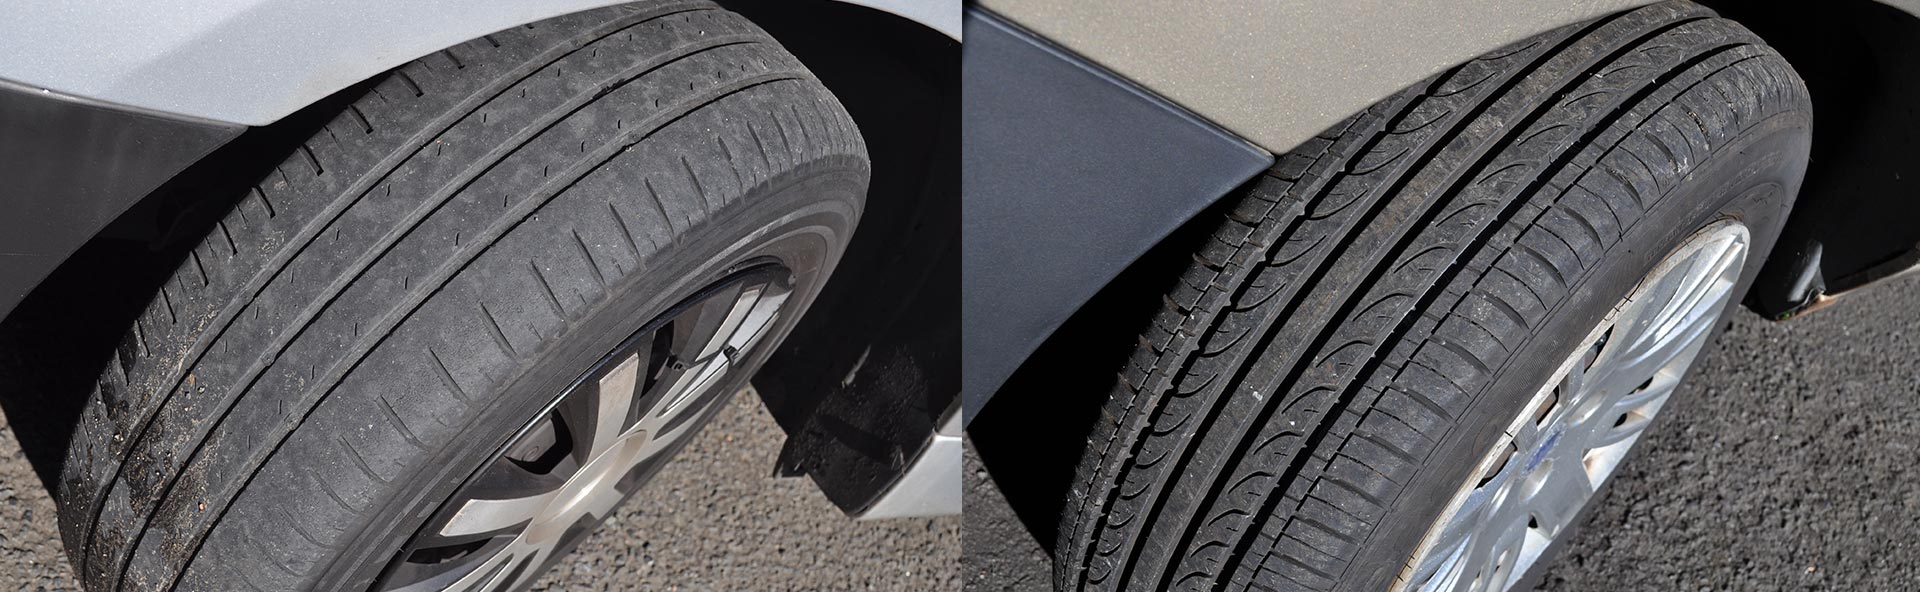 tyre-safety-checks-tyre-replacements-dumbarton